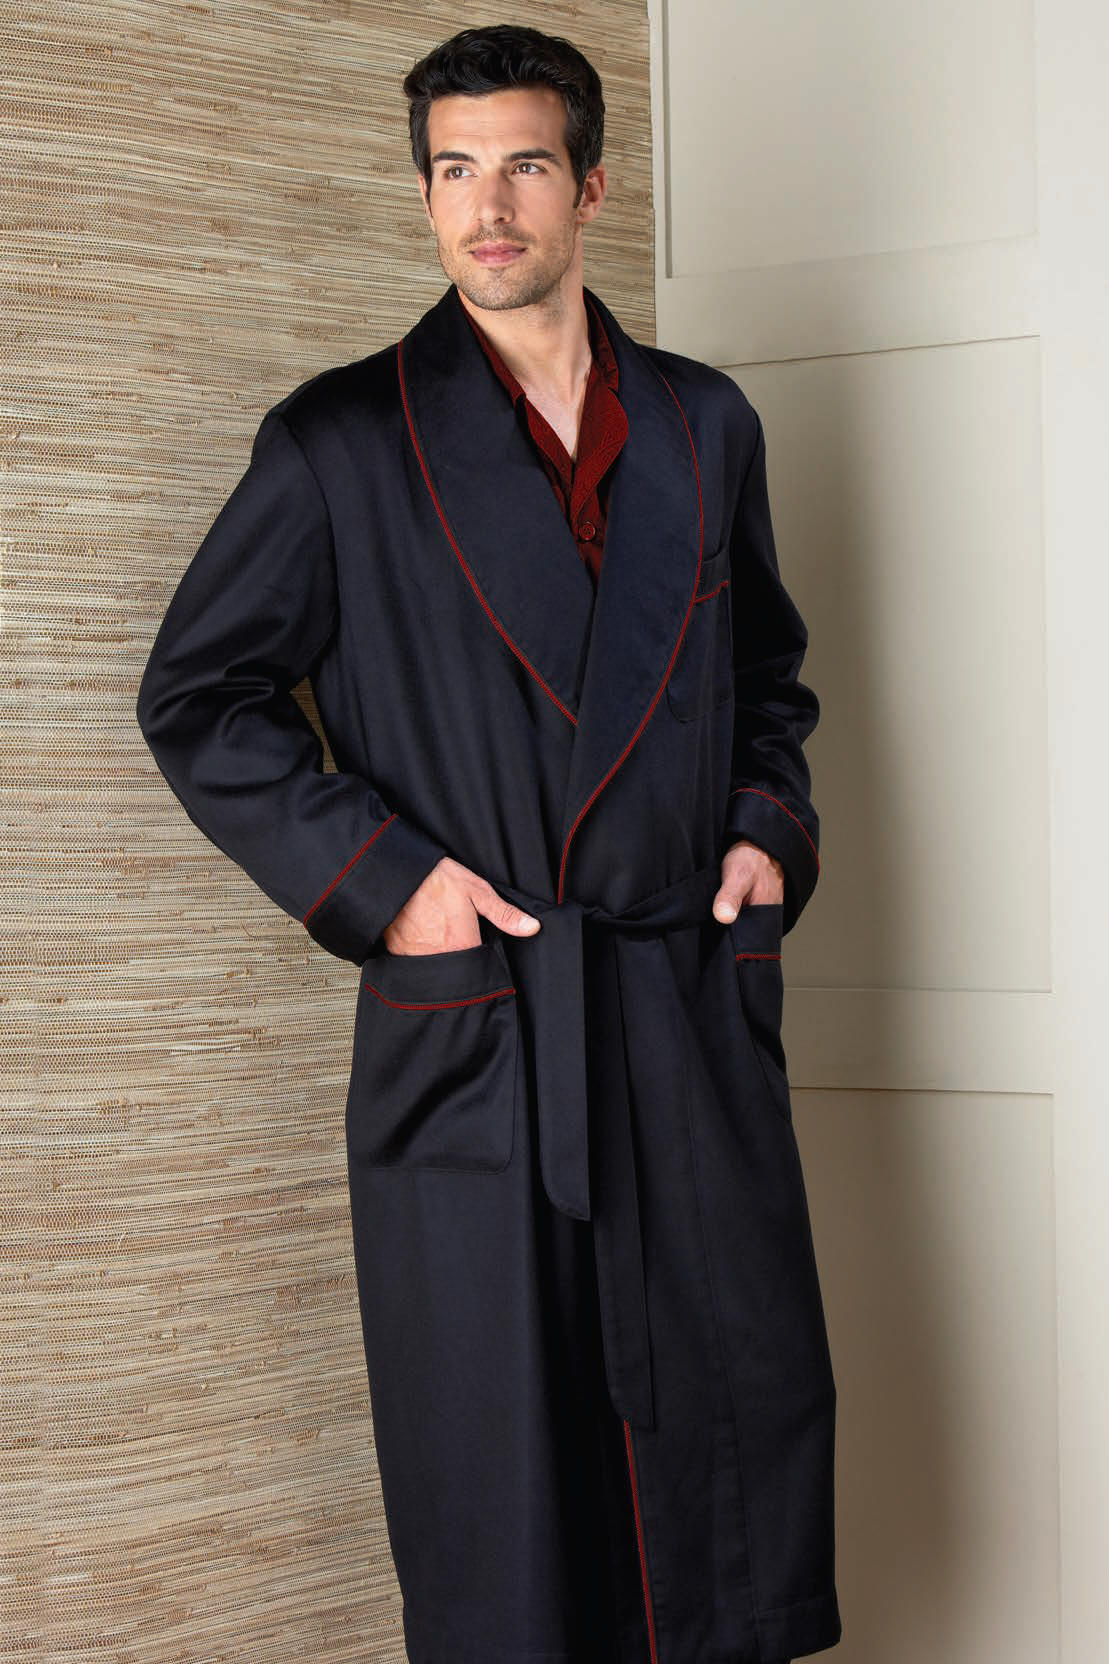 Cashmere Personalized Robes from Dann Clothing e9730e786